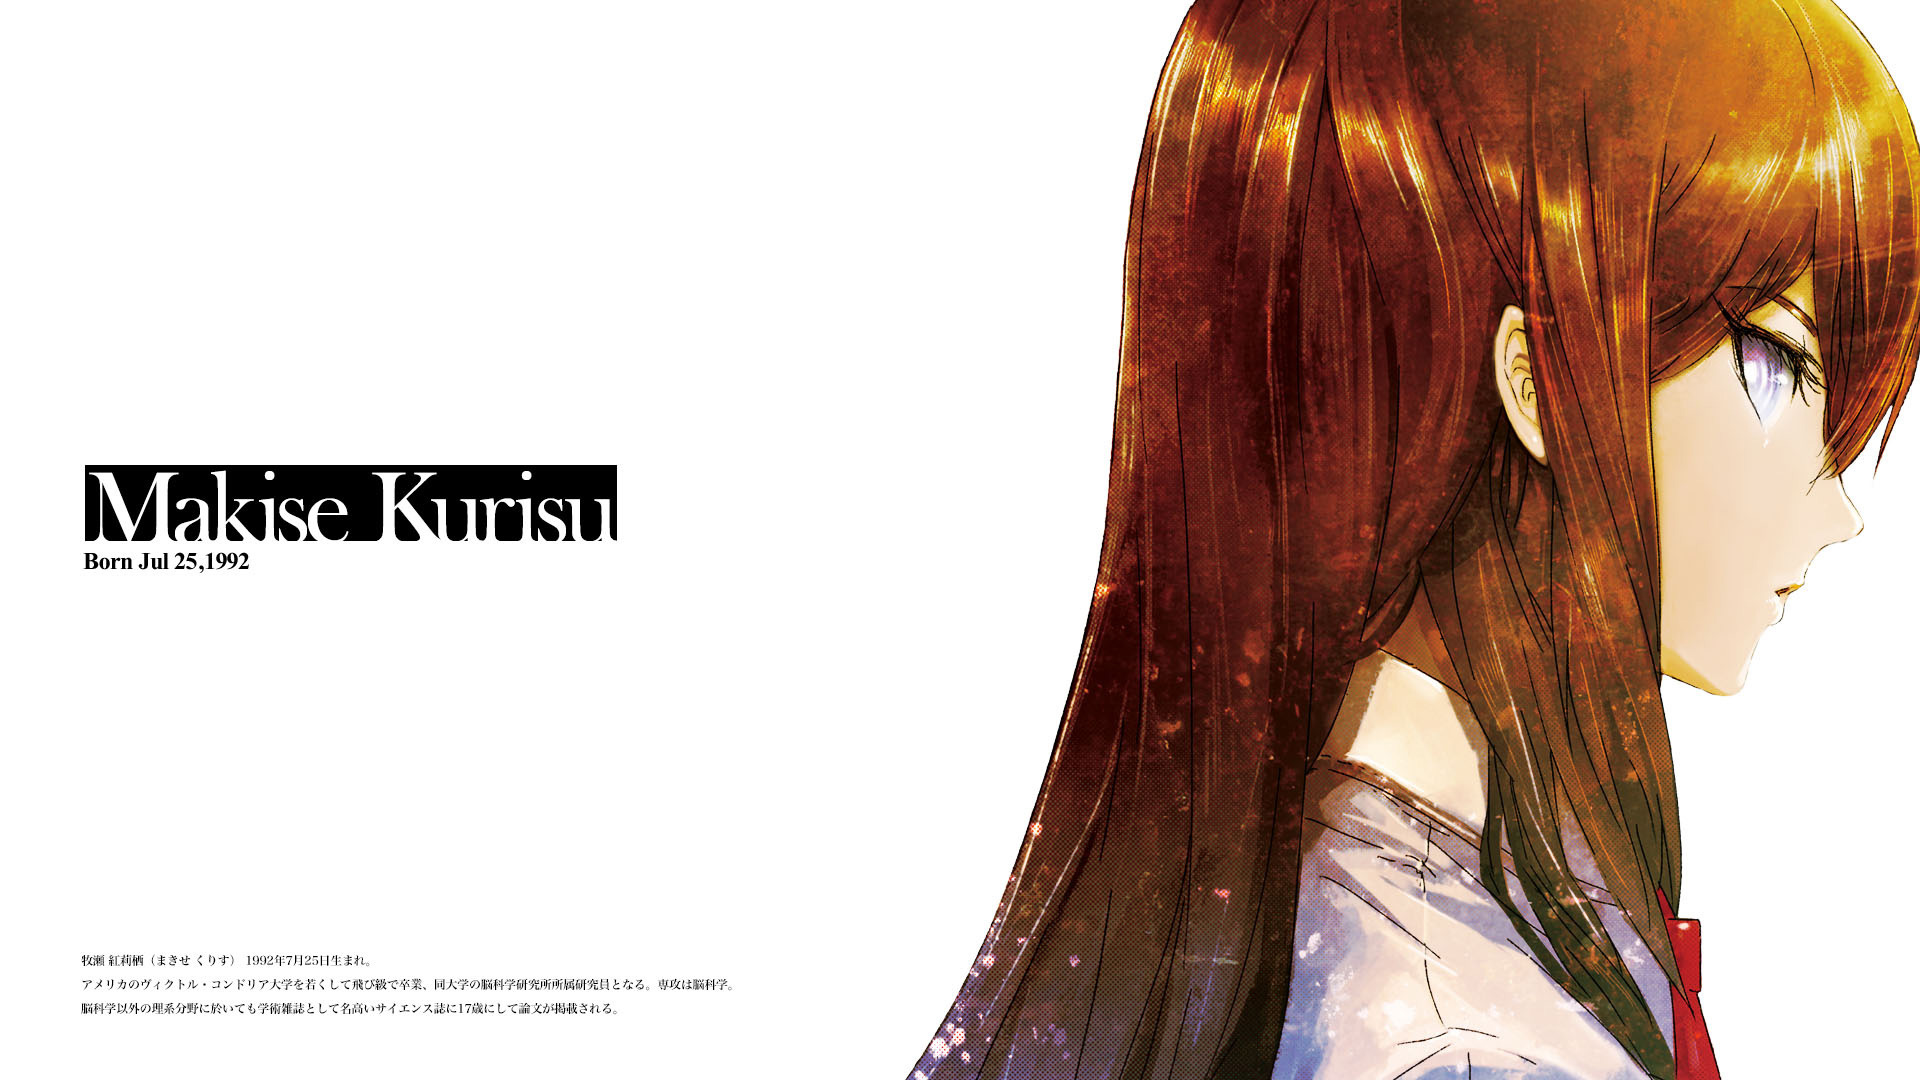 Kurisu Makise's Birthday Was Celebrated with This Special Steins;Gate 0 Wallpaper